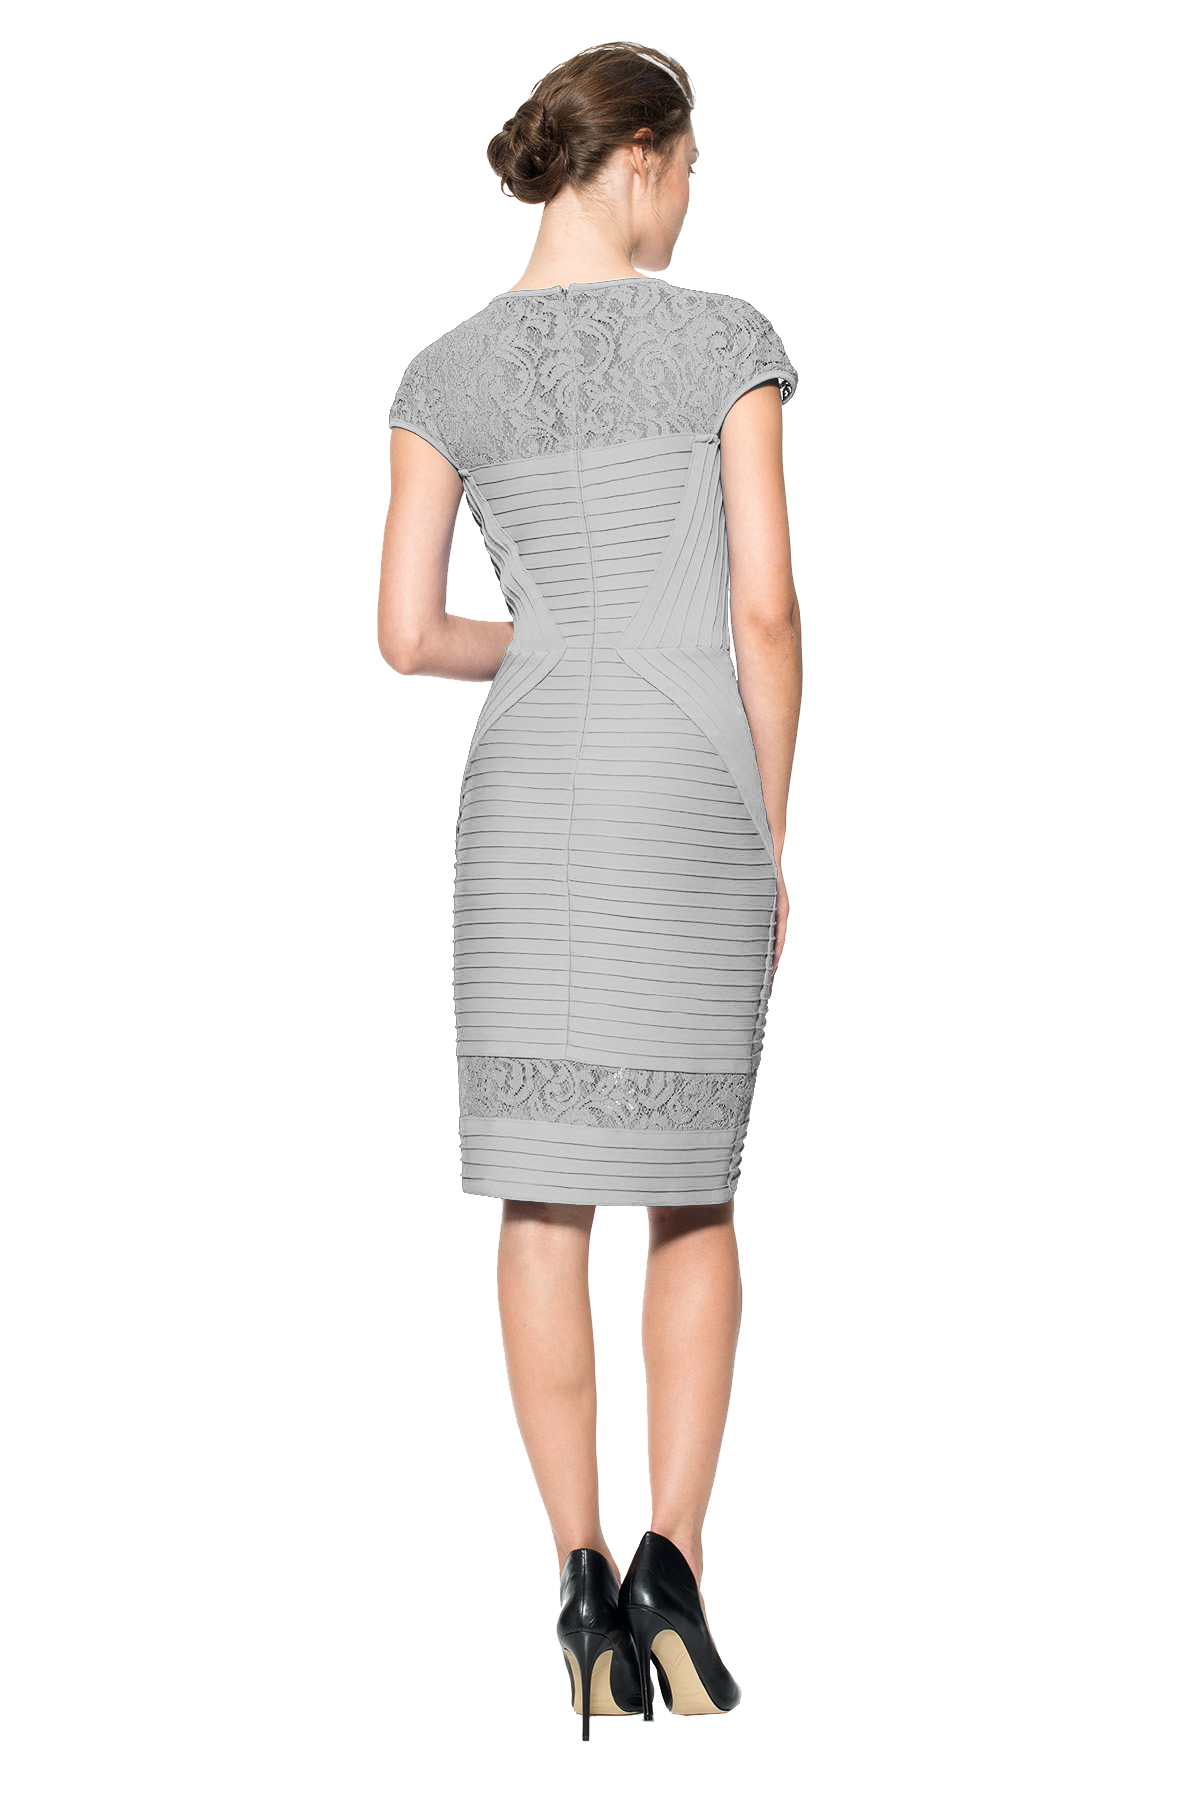 Cutout woman gray back. Clipart person cut out